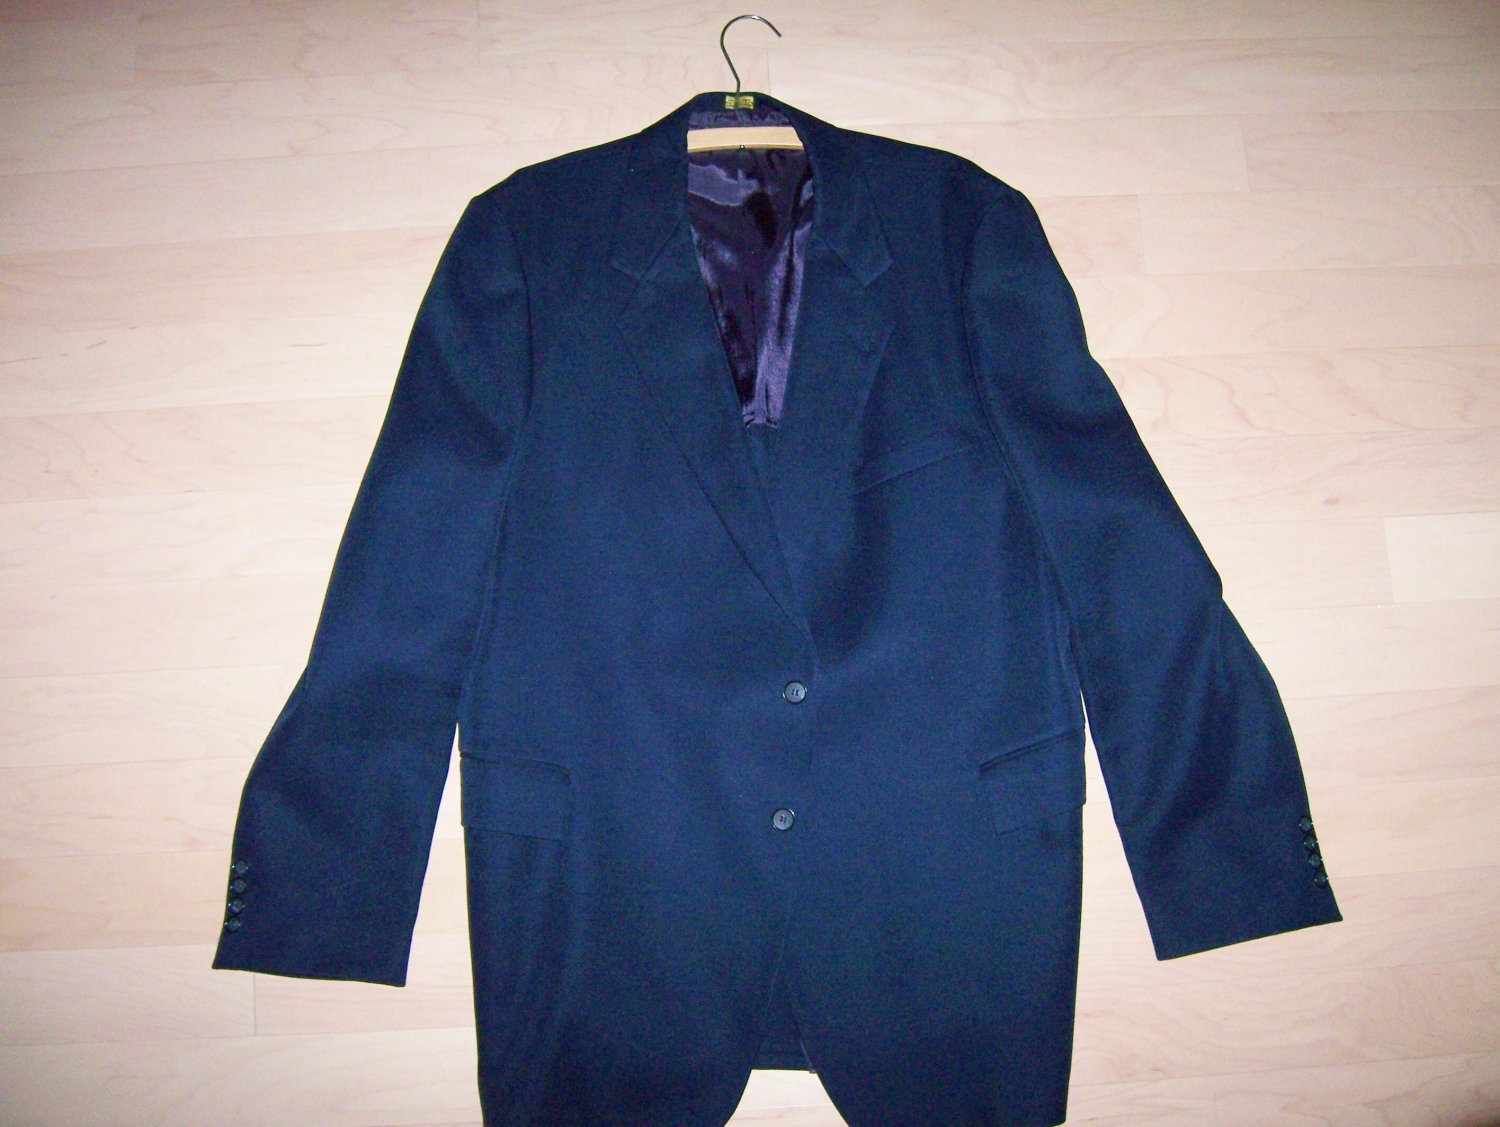 Blazer/Sports Coat Navy Size 44 Long BNK262